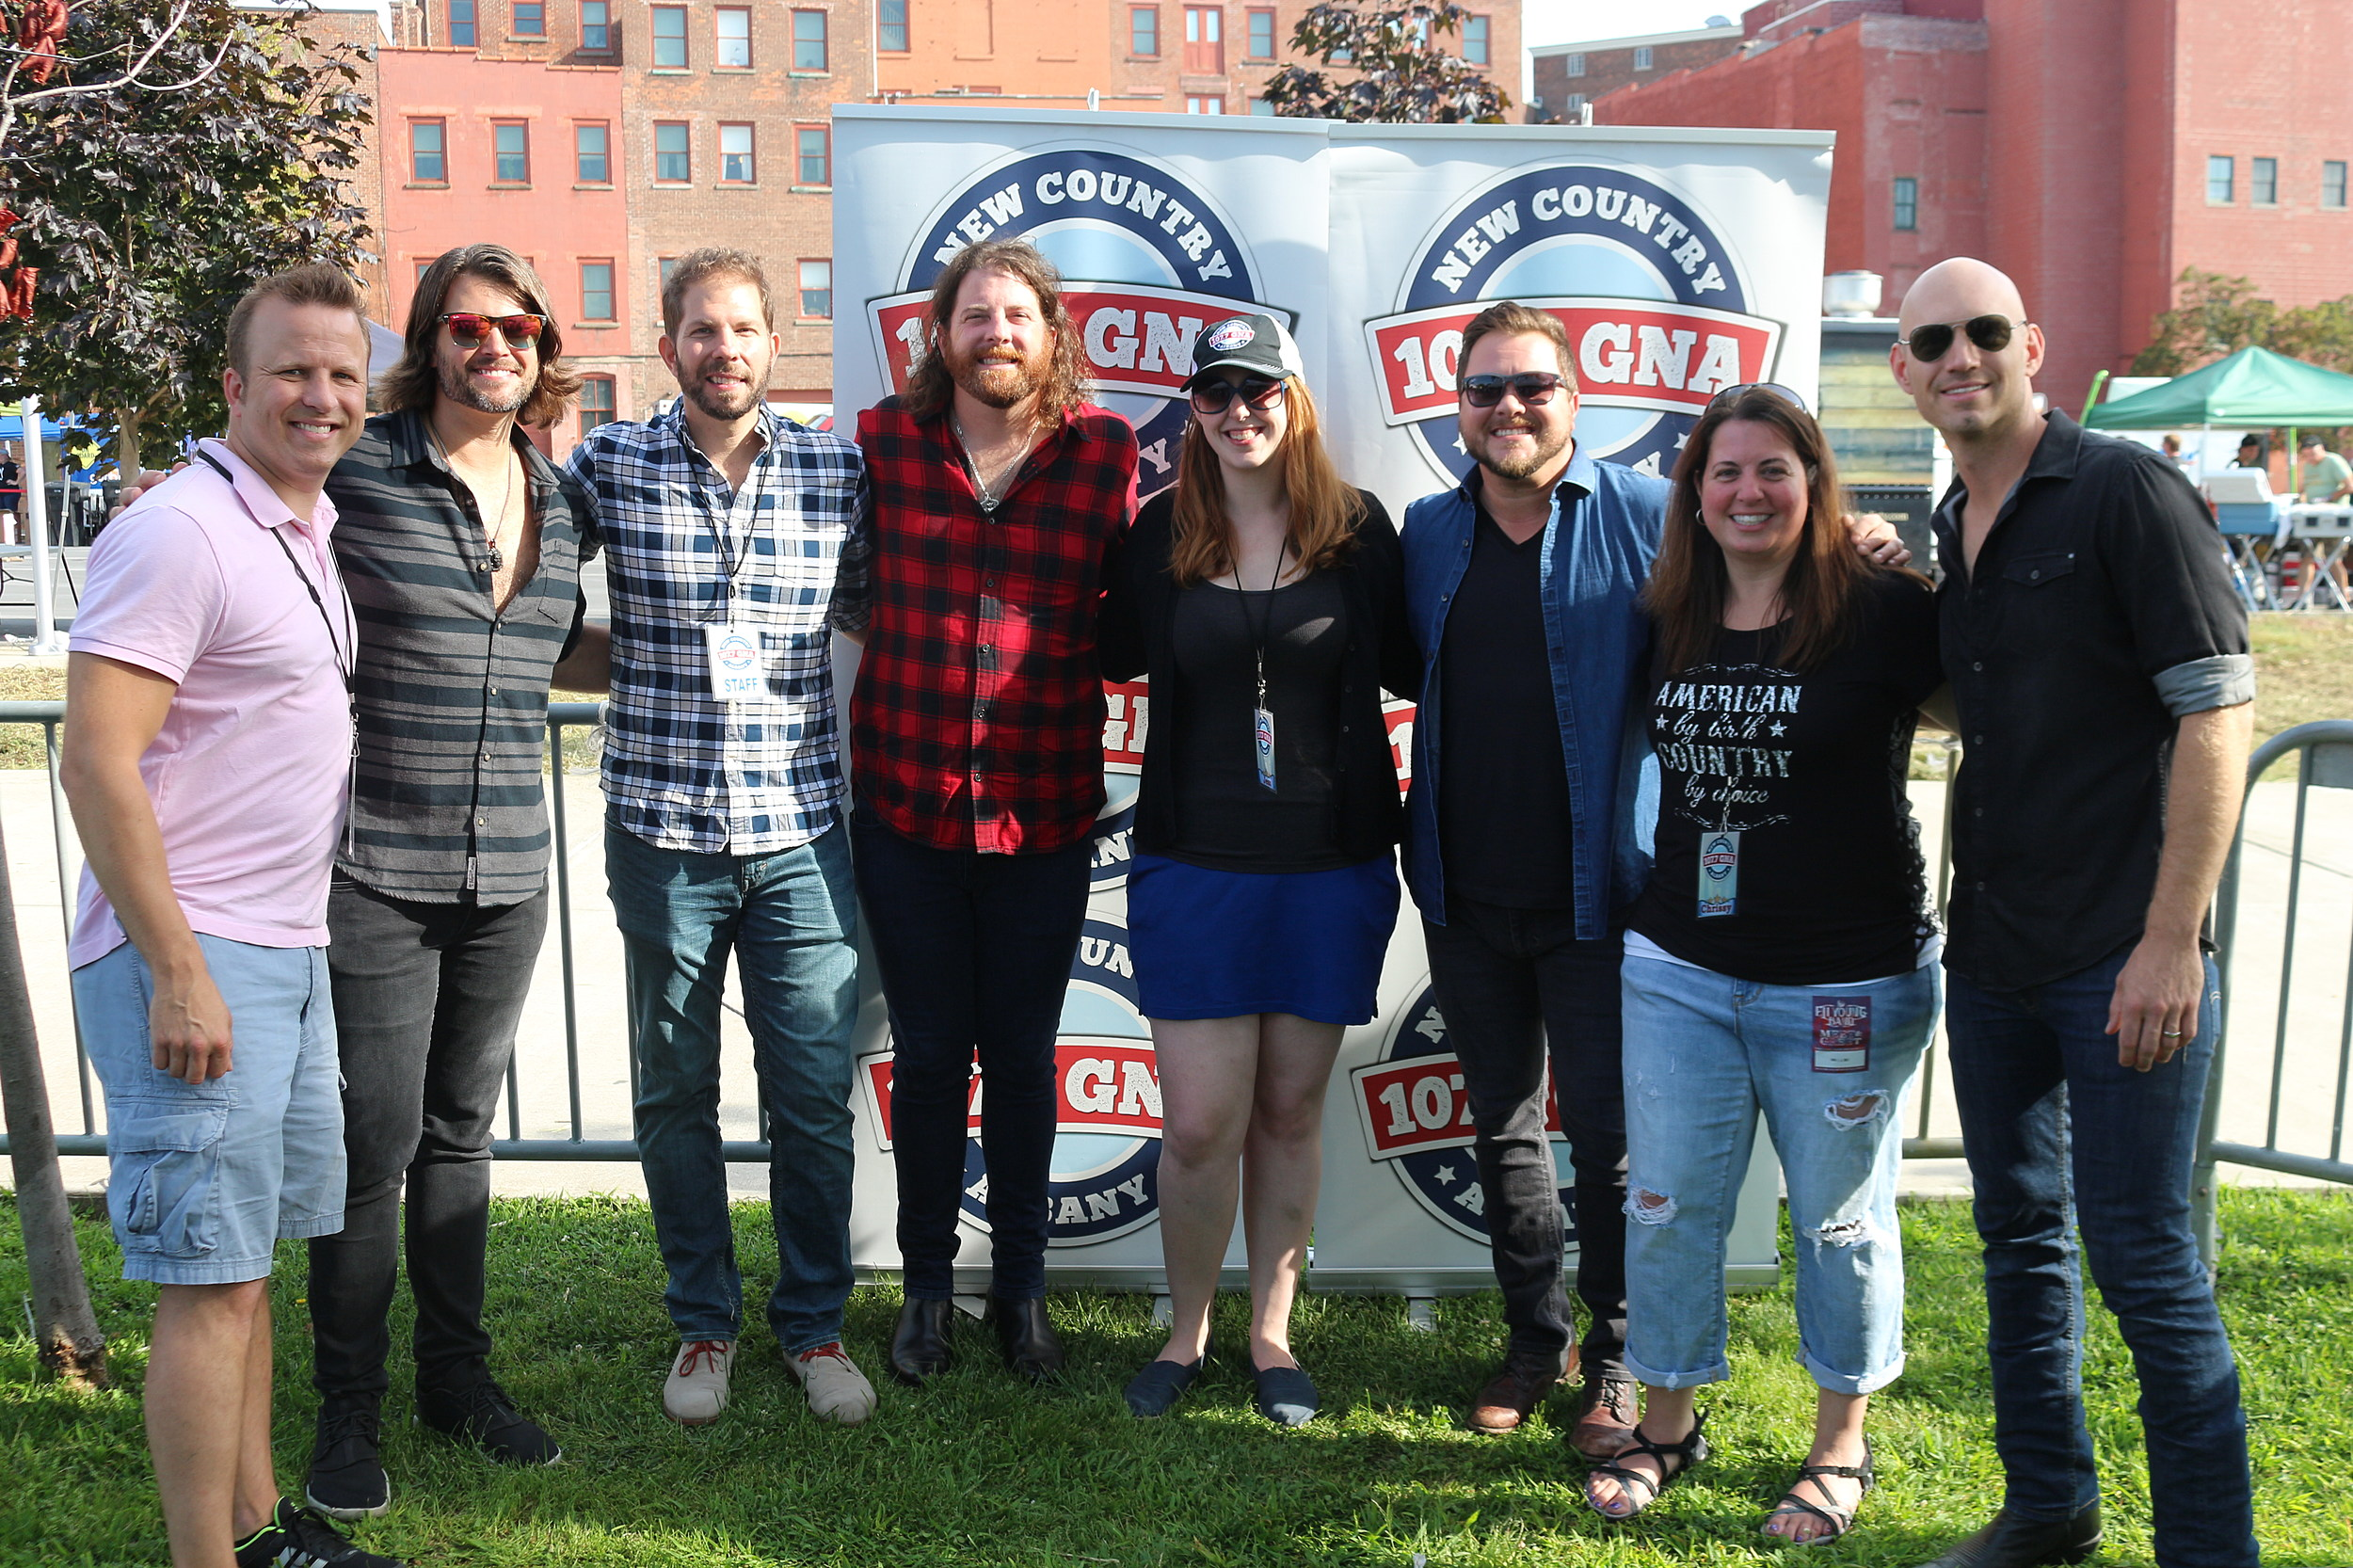 Eli young band meet greet photos gallery kristyandbryce Images